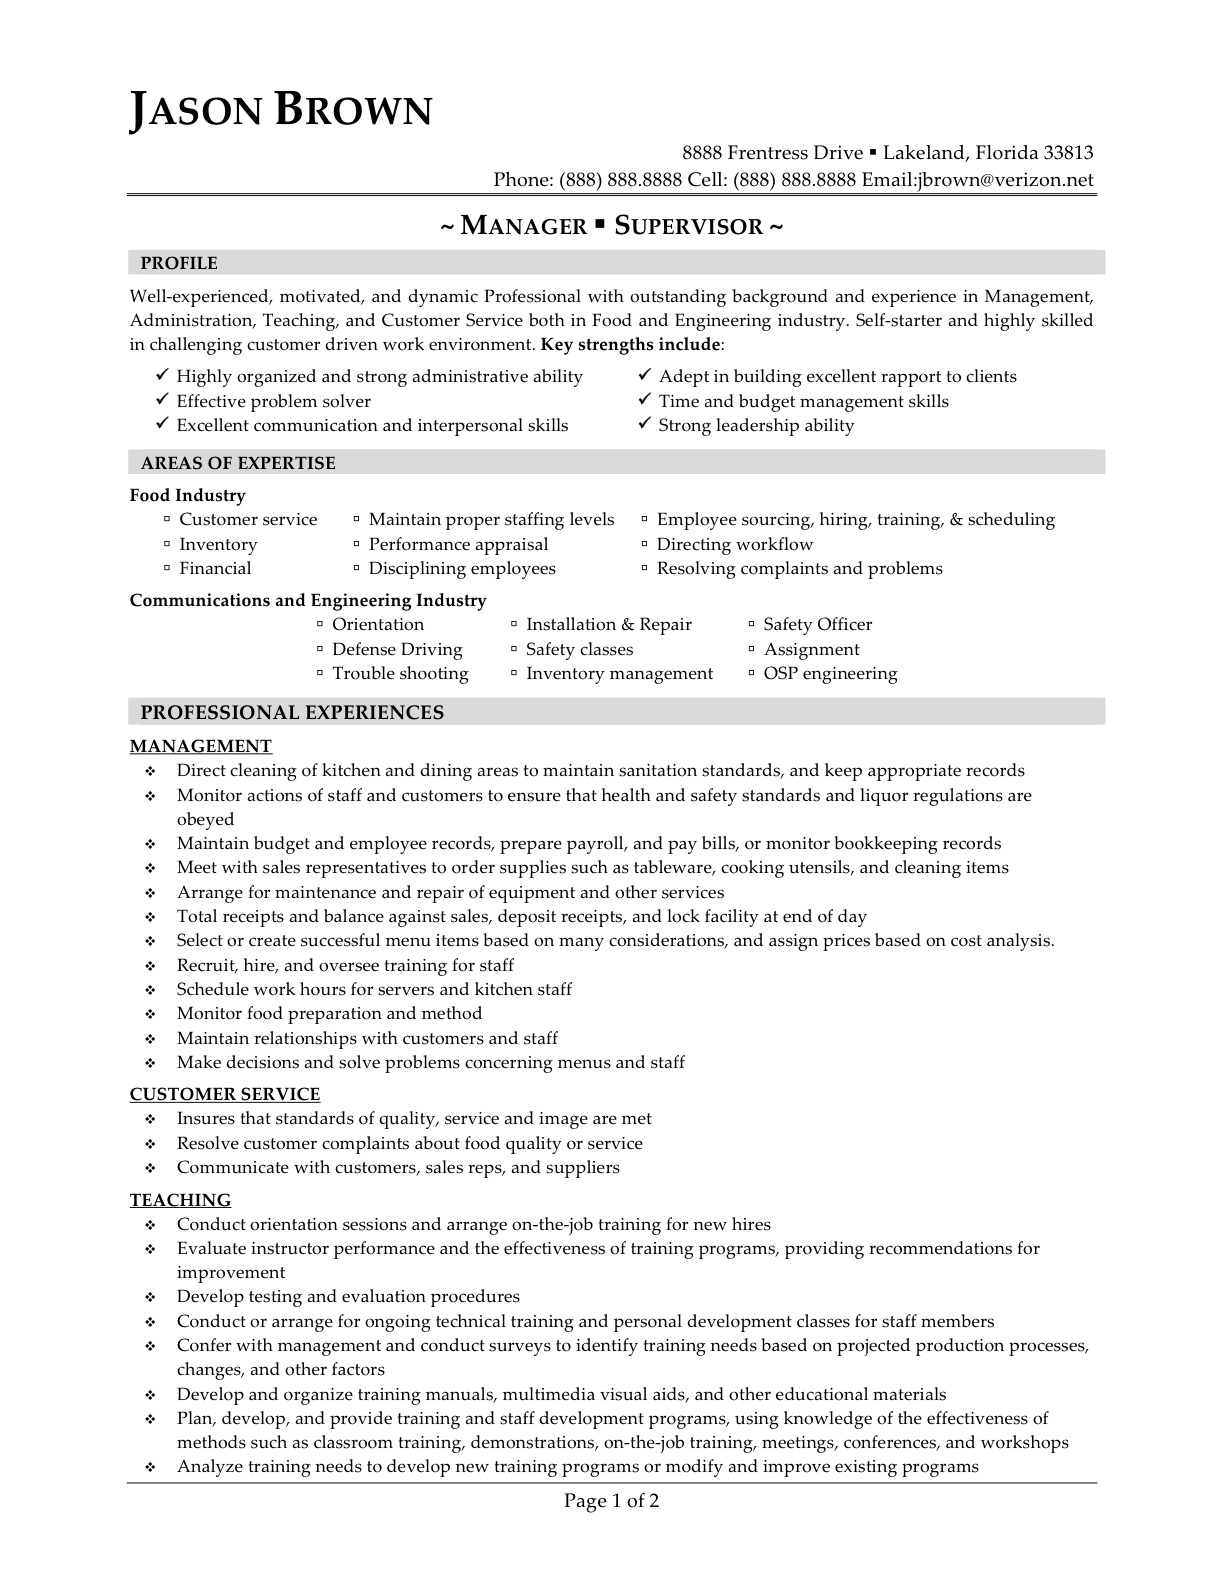 General Manager Supervisor Sample Restaurant Management Resume Gallery